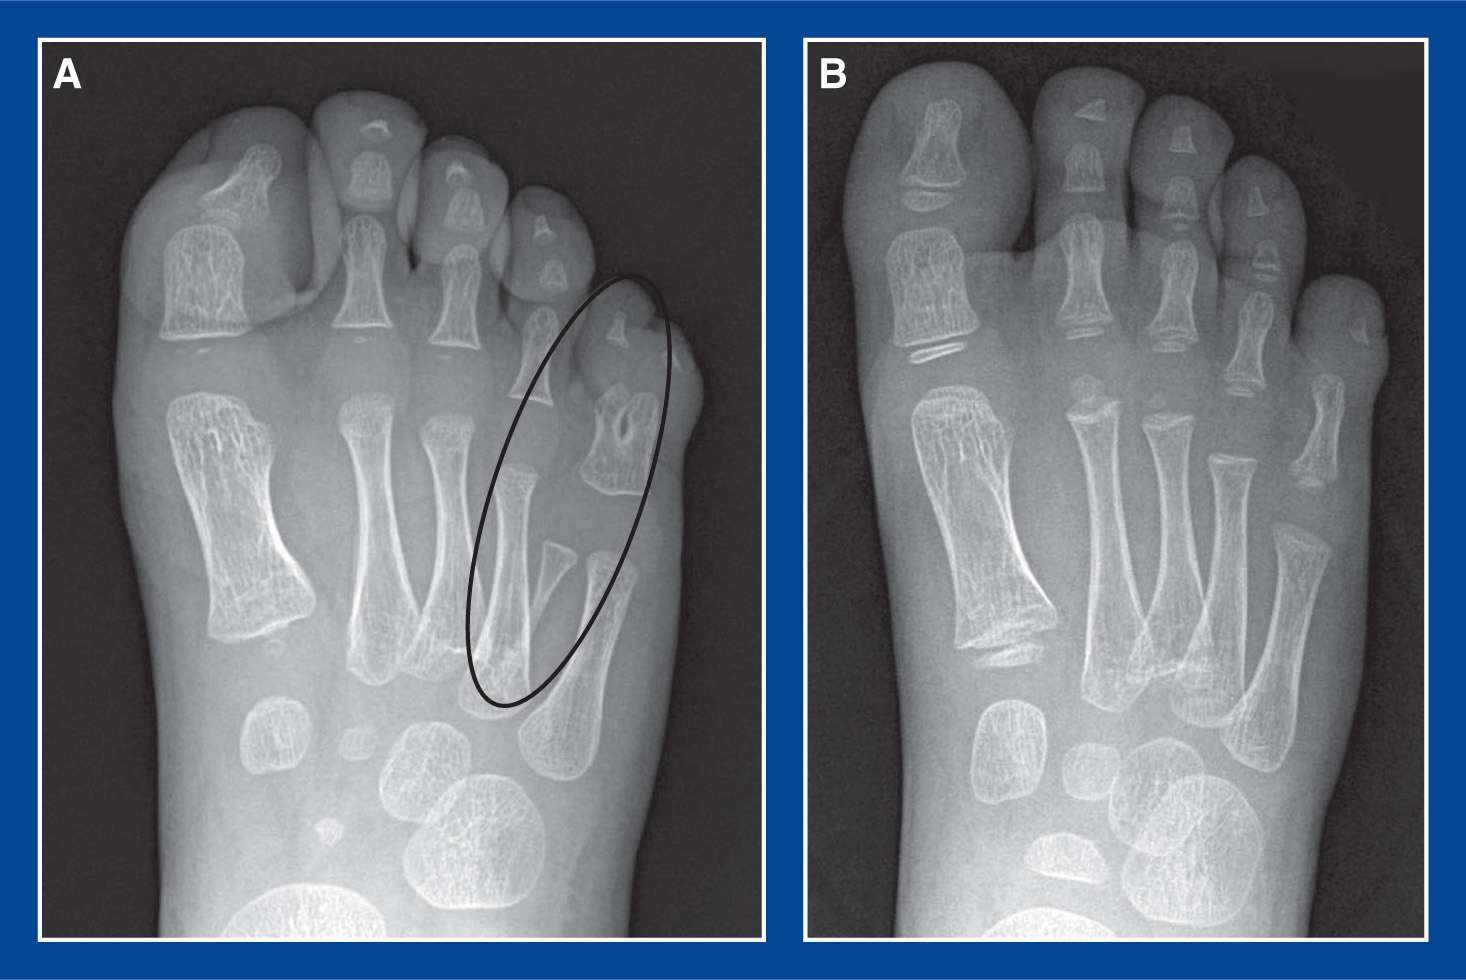 Foot Malformations Musculoskeletal Key Discover free flashcards, games and test preparation activities designed to help you learn about synchondrosis movement and other subjects. foot malformations musculoskeletal key